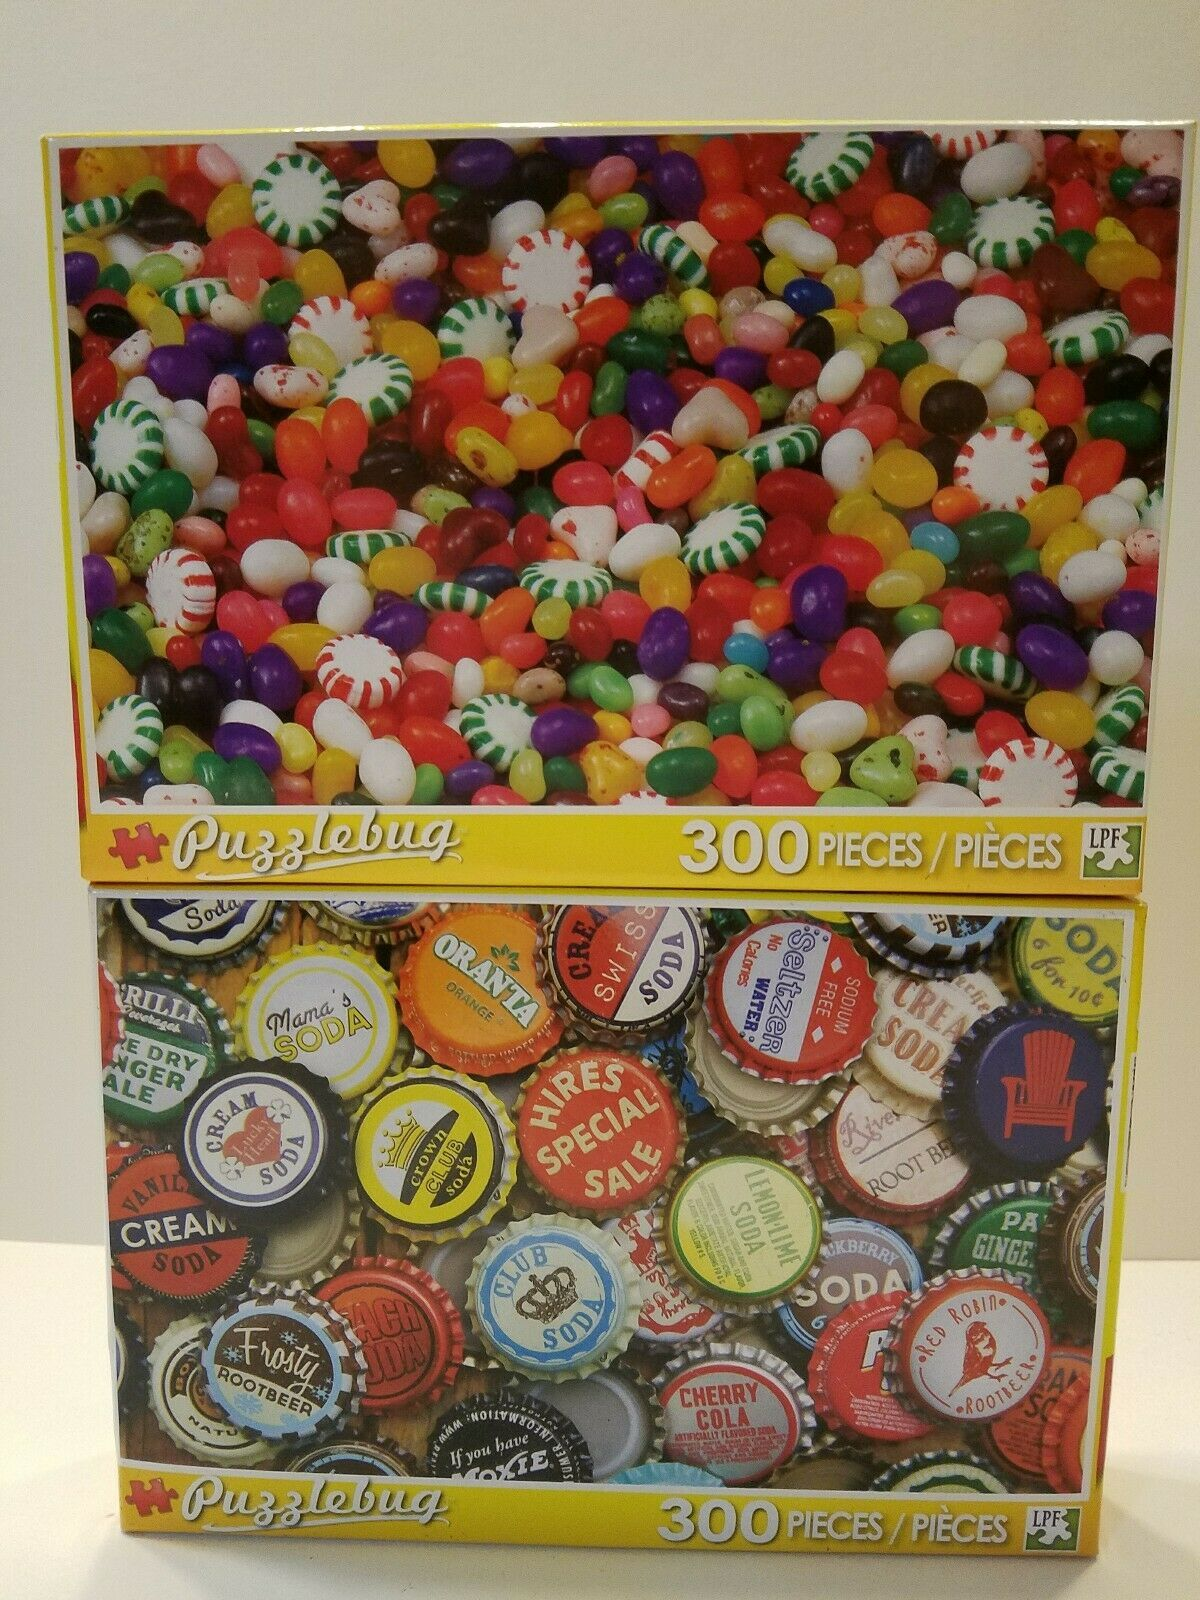 NEW Puzzlebug 300 Piece Jigsaw Puzzle ~ Candy